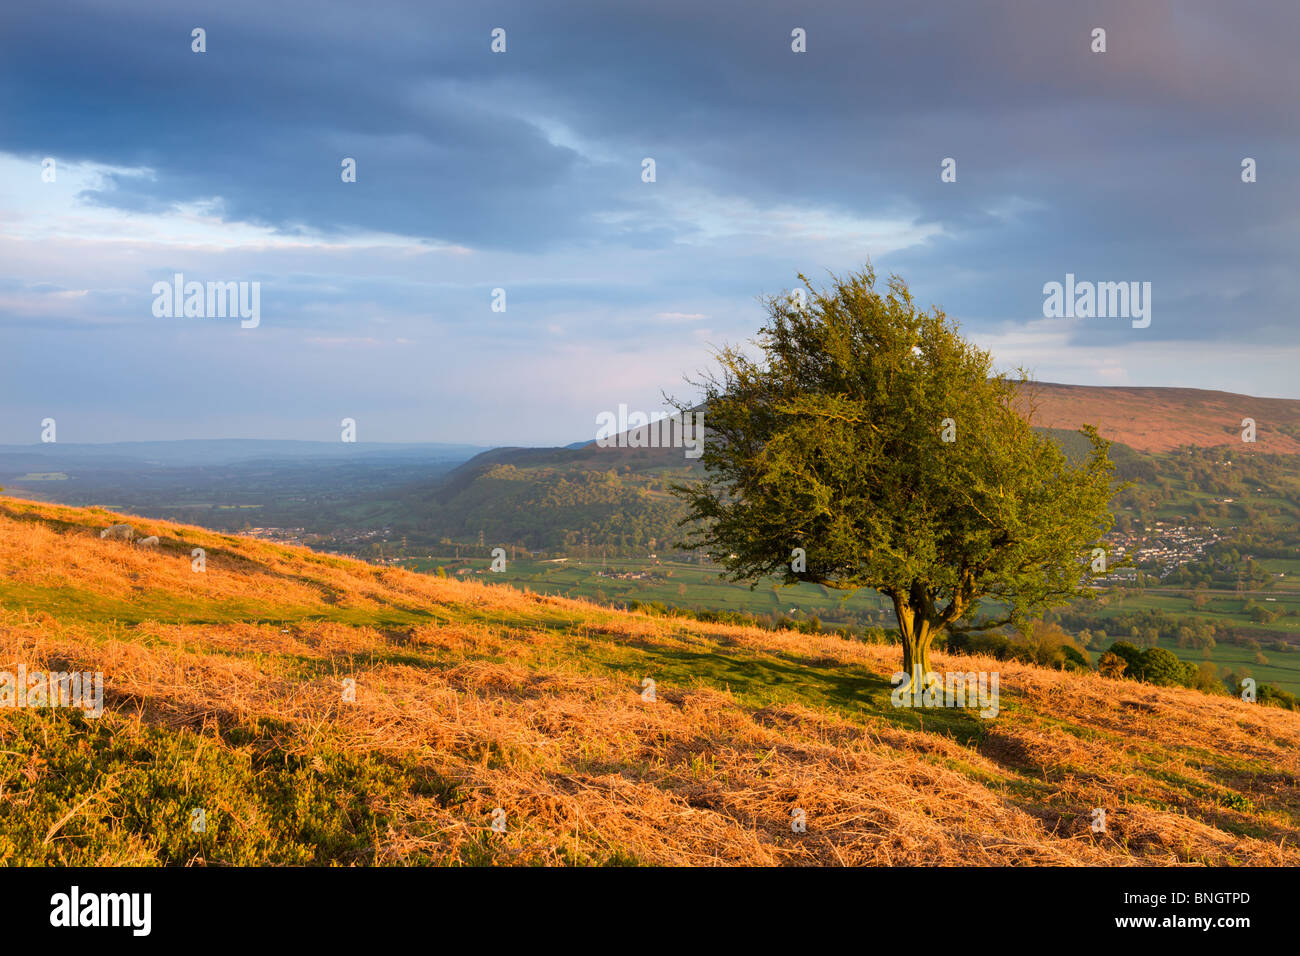 Hawthorn tree and Usk Valley near Abergavenny from the slopes of Sugar Loaf mountain, Brecon Beacons National Park, - Stock Image